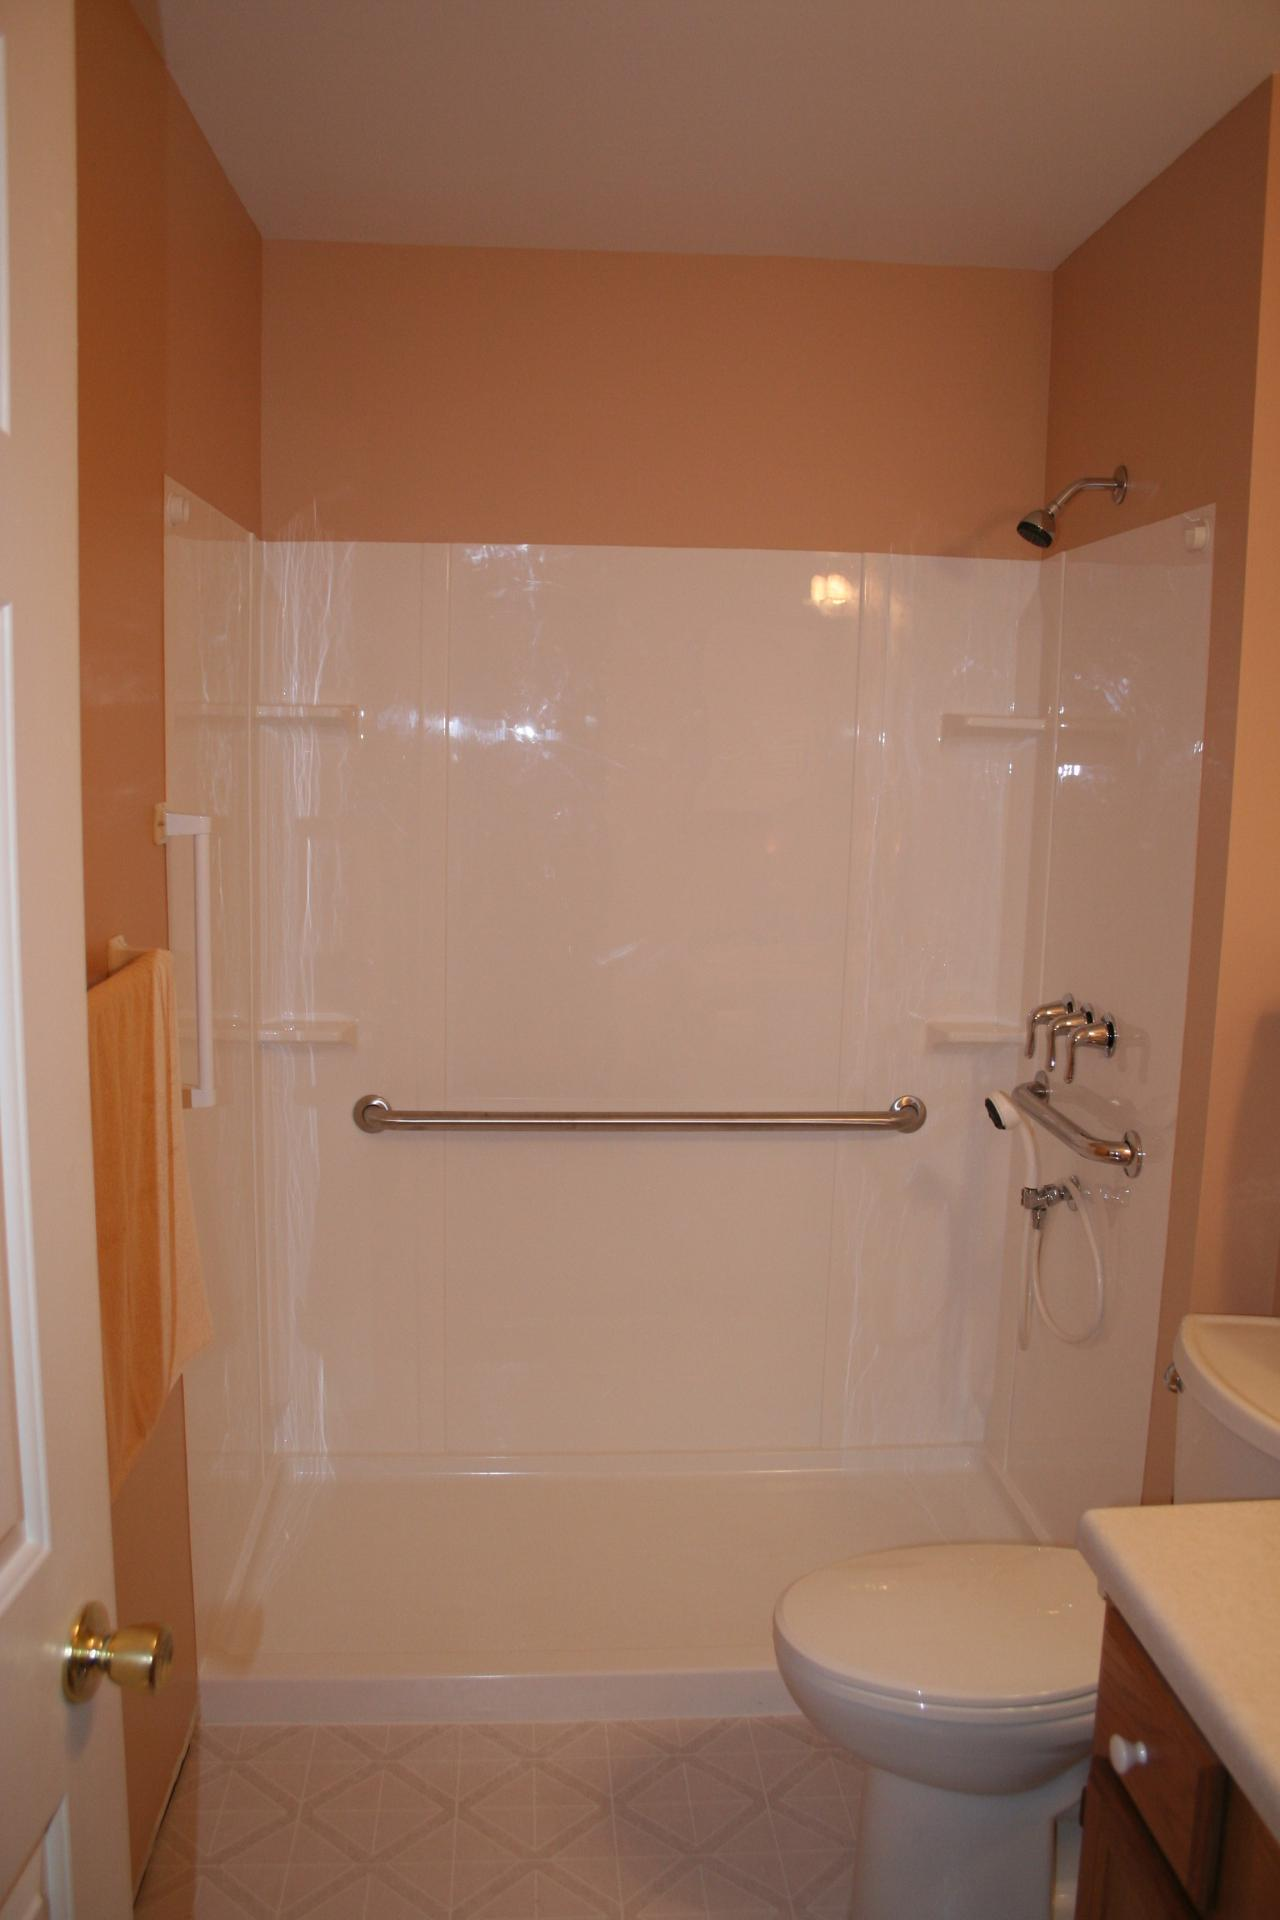 Nest Homes Construction - Handicap Shower